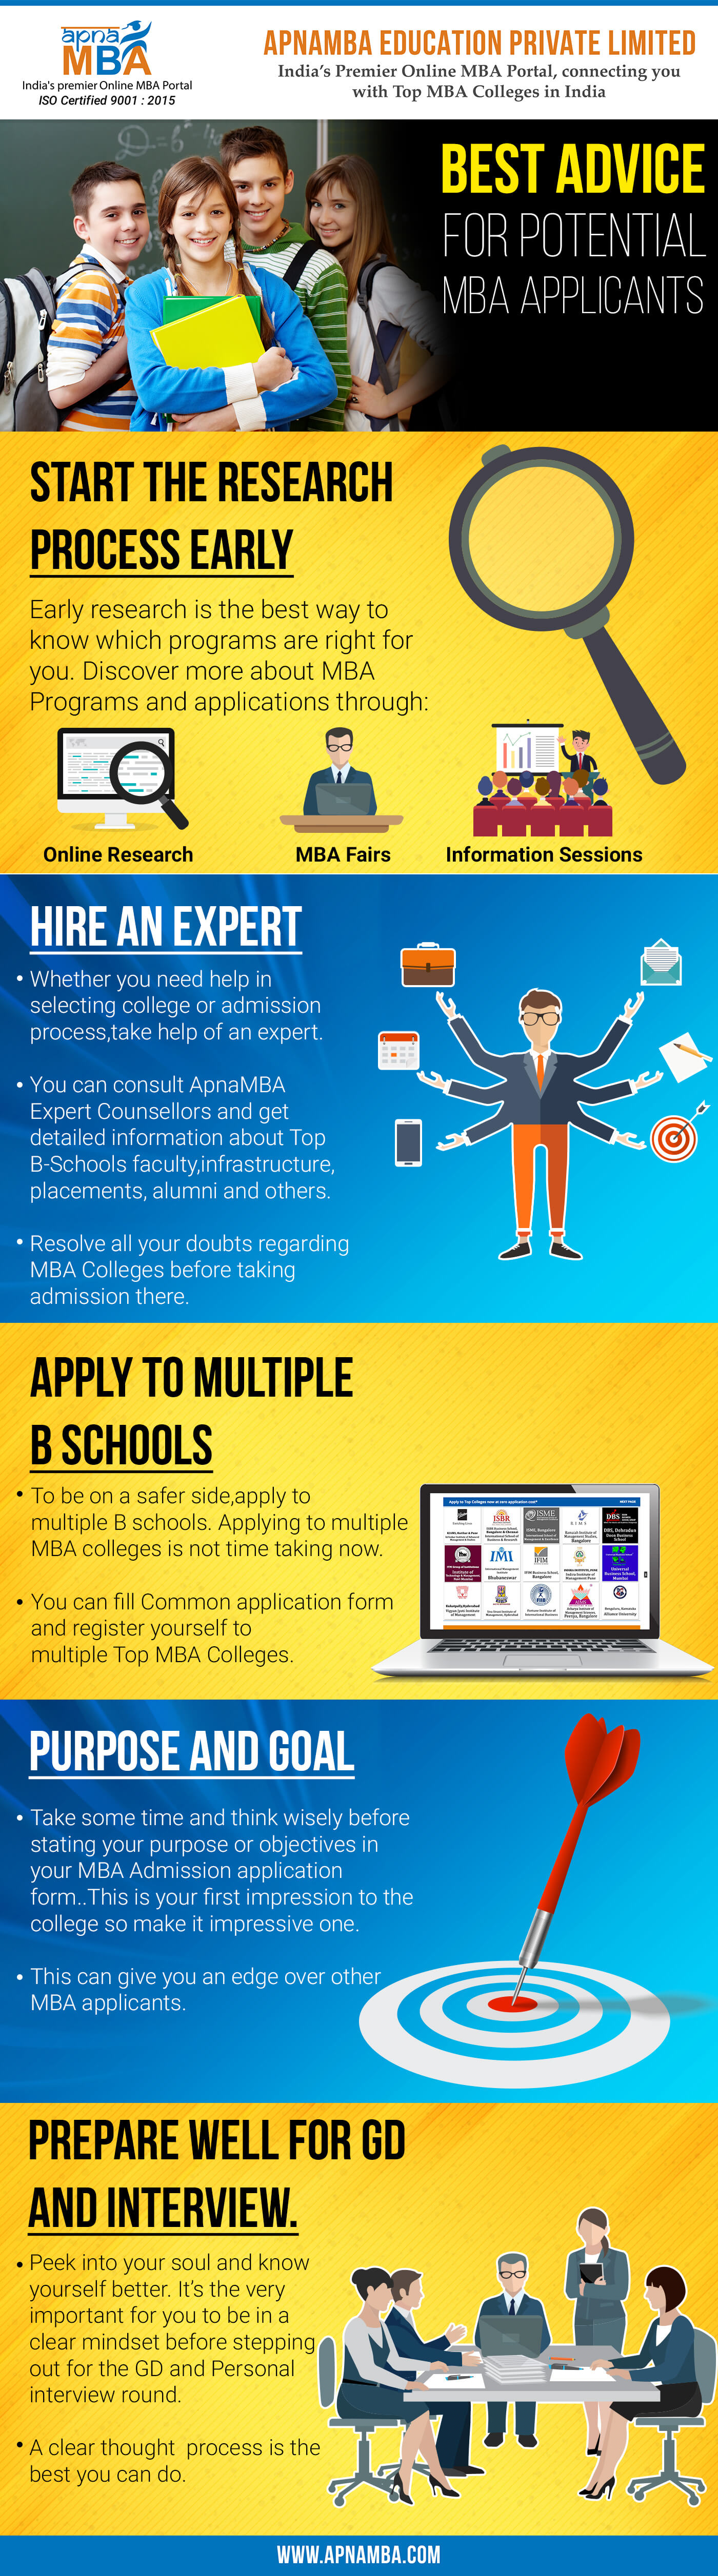 MBA Applicants | Potential MBA Applicants